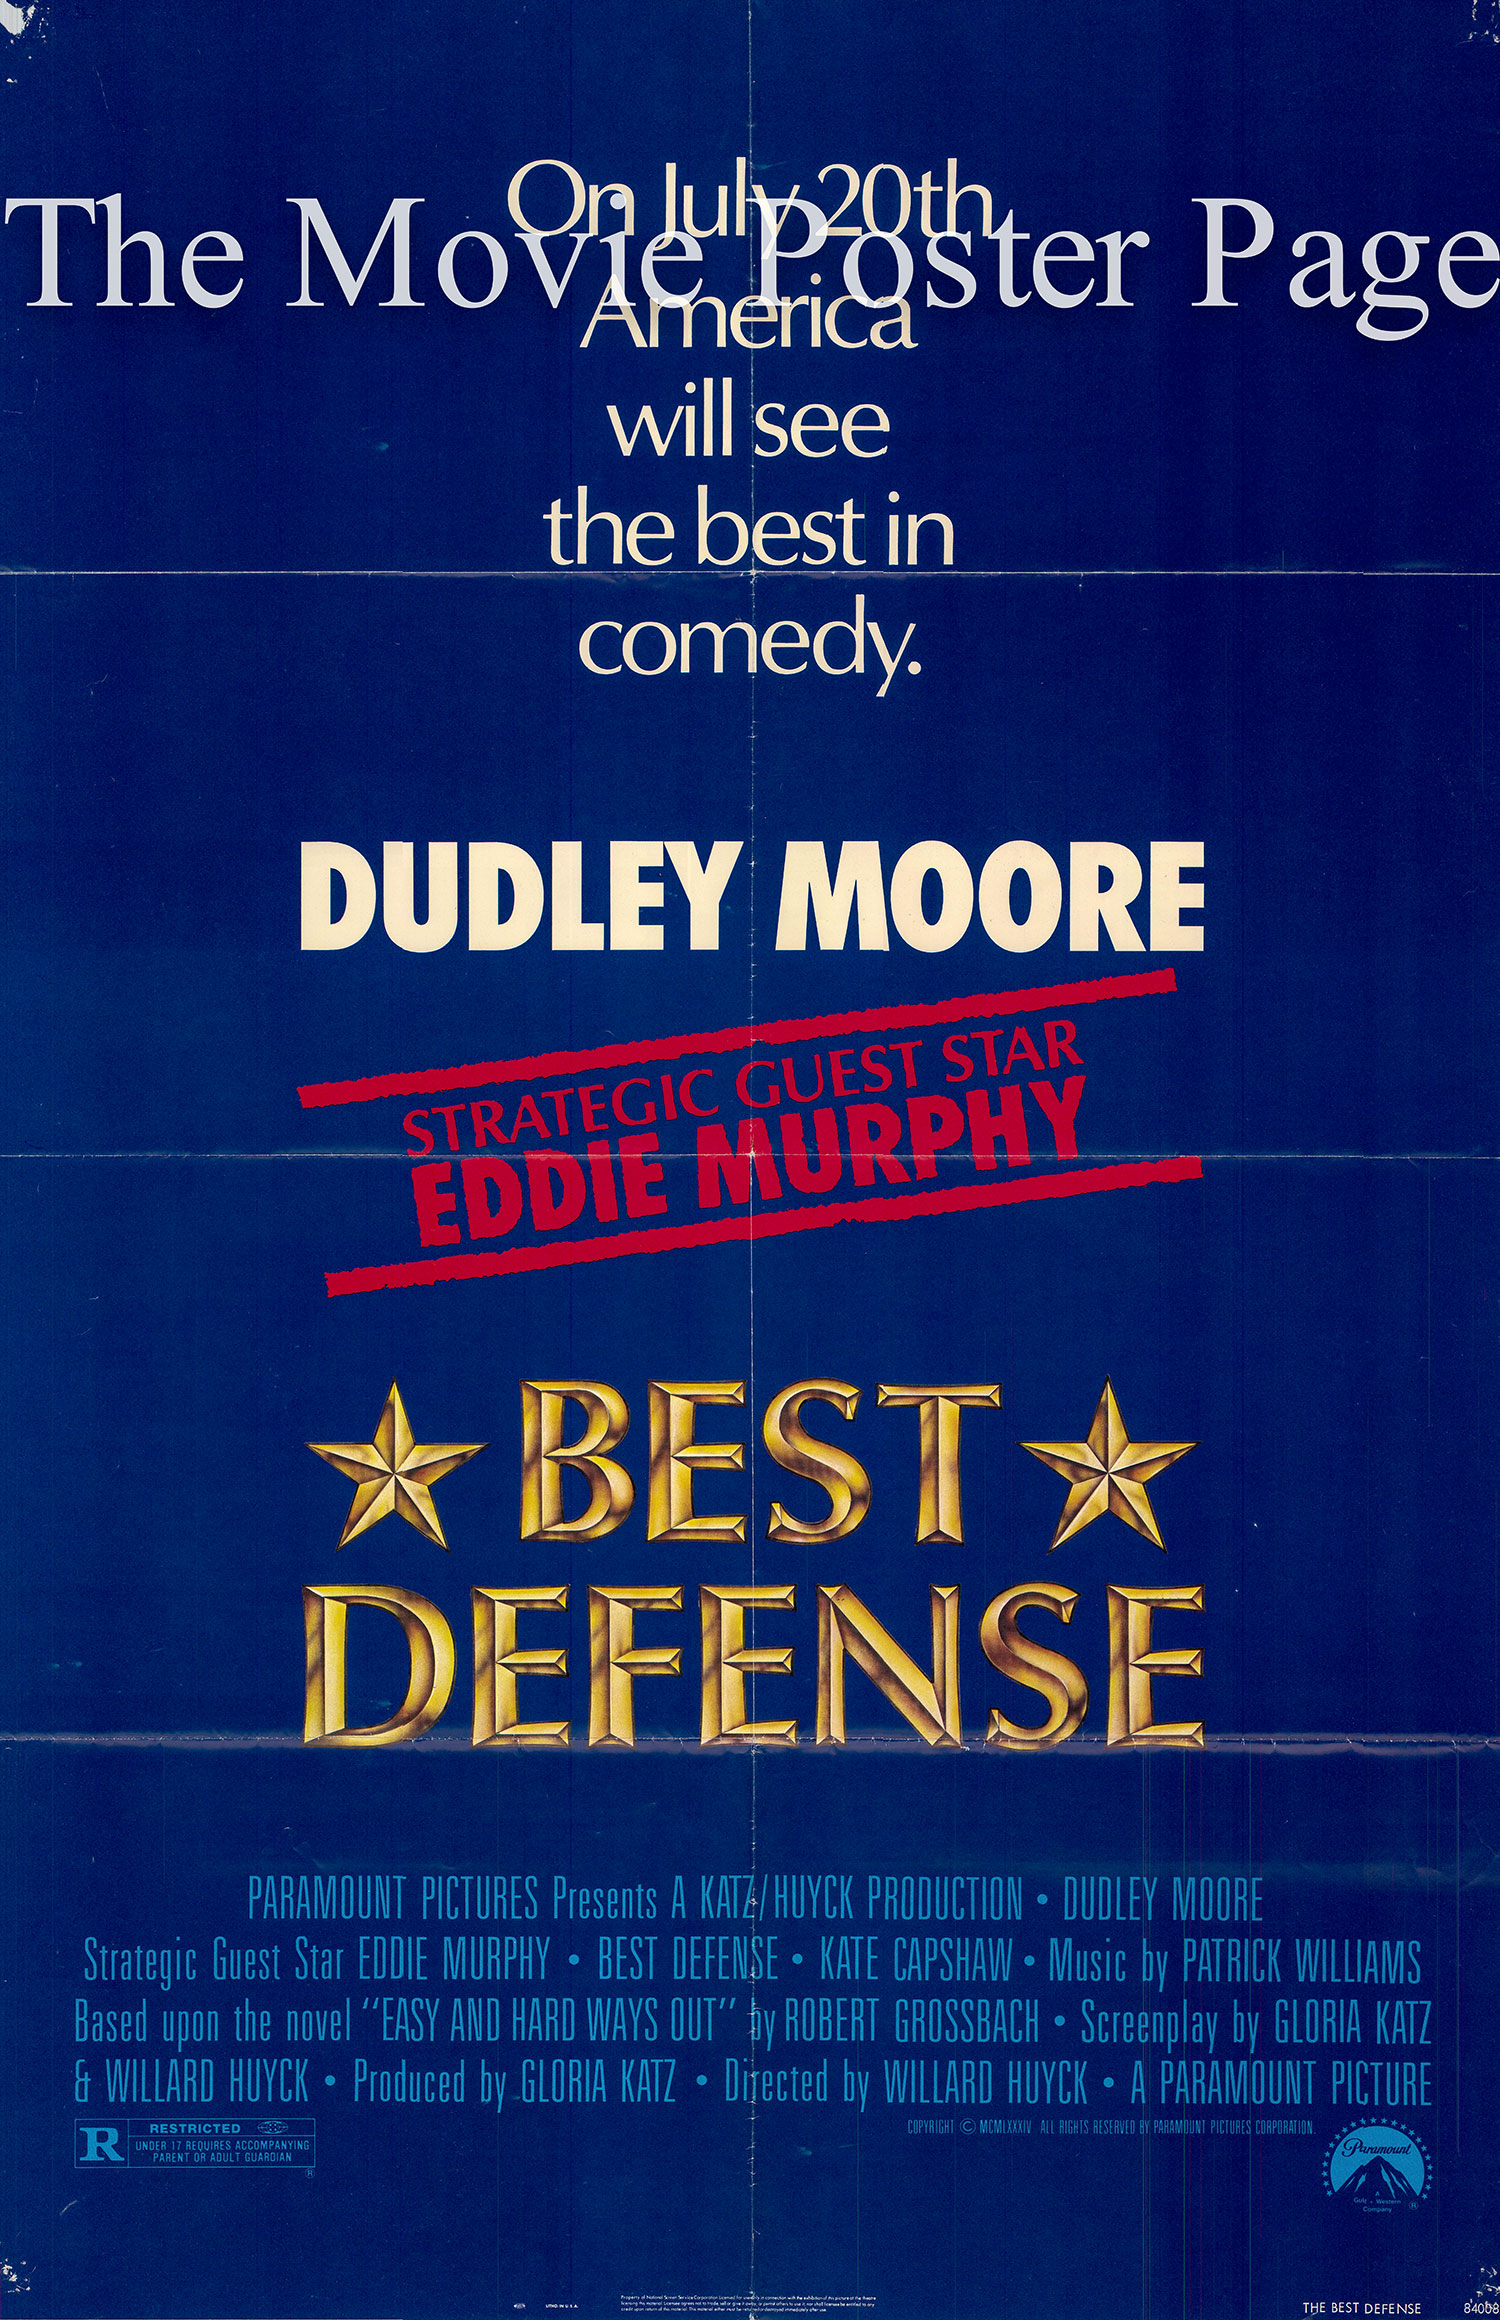 Pictured is an US promotional poster for the 1984 Willard Huyck film Best Defense starring Dudley Moore and Eddie Murphy.